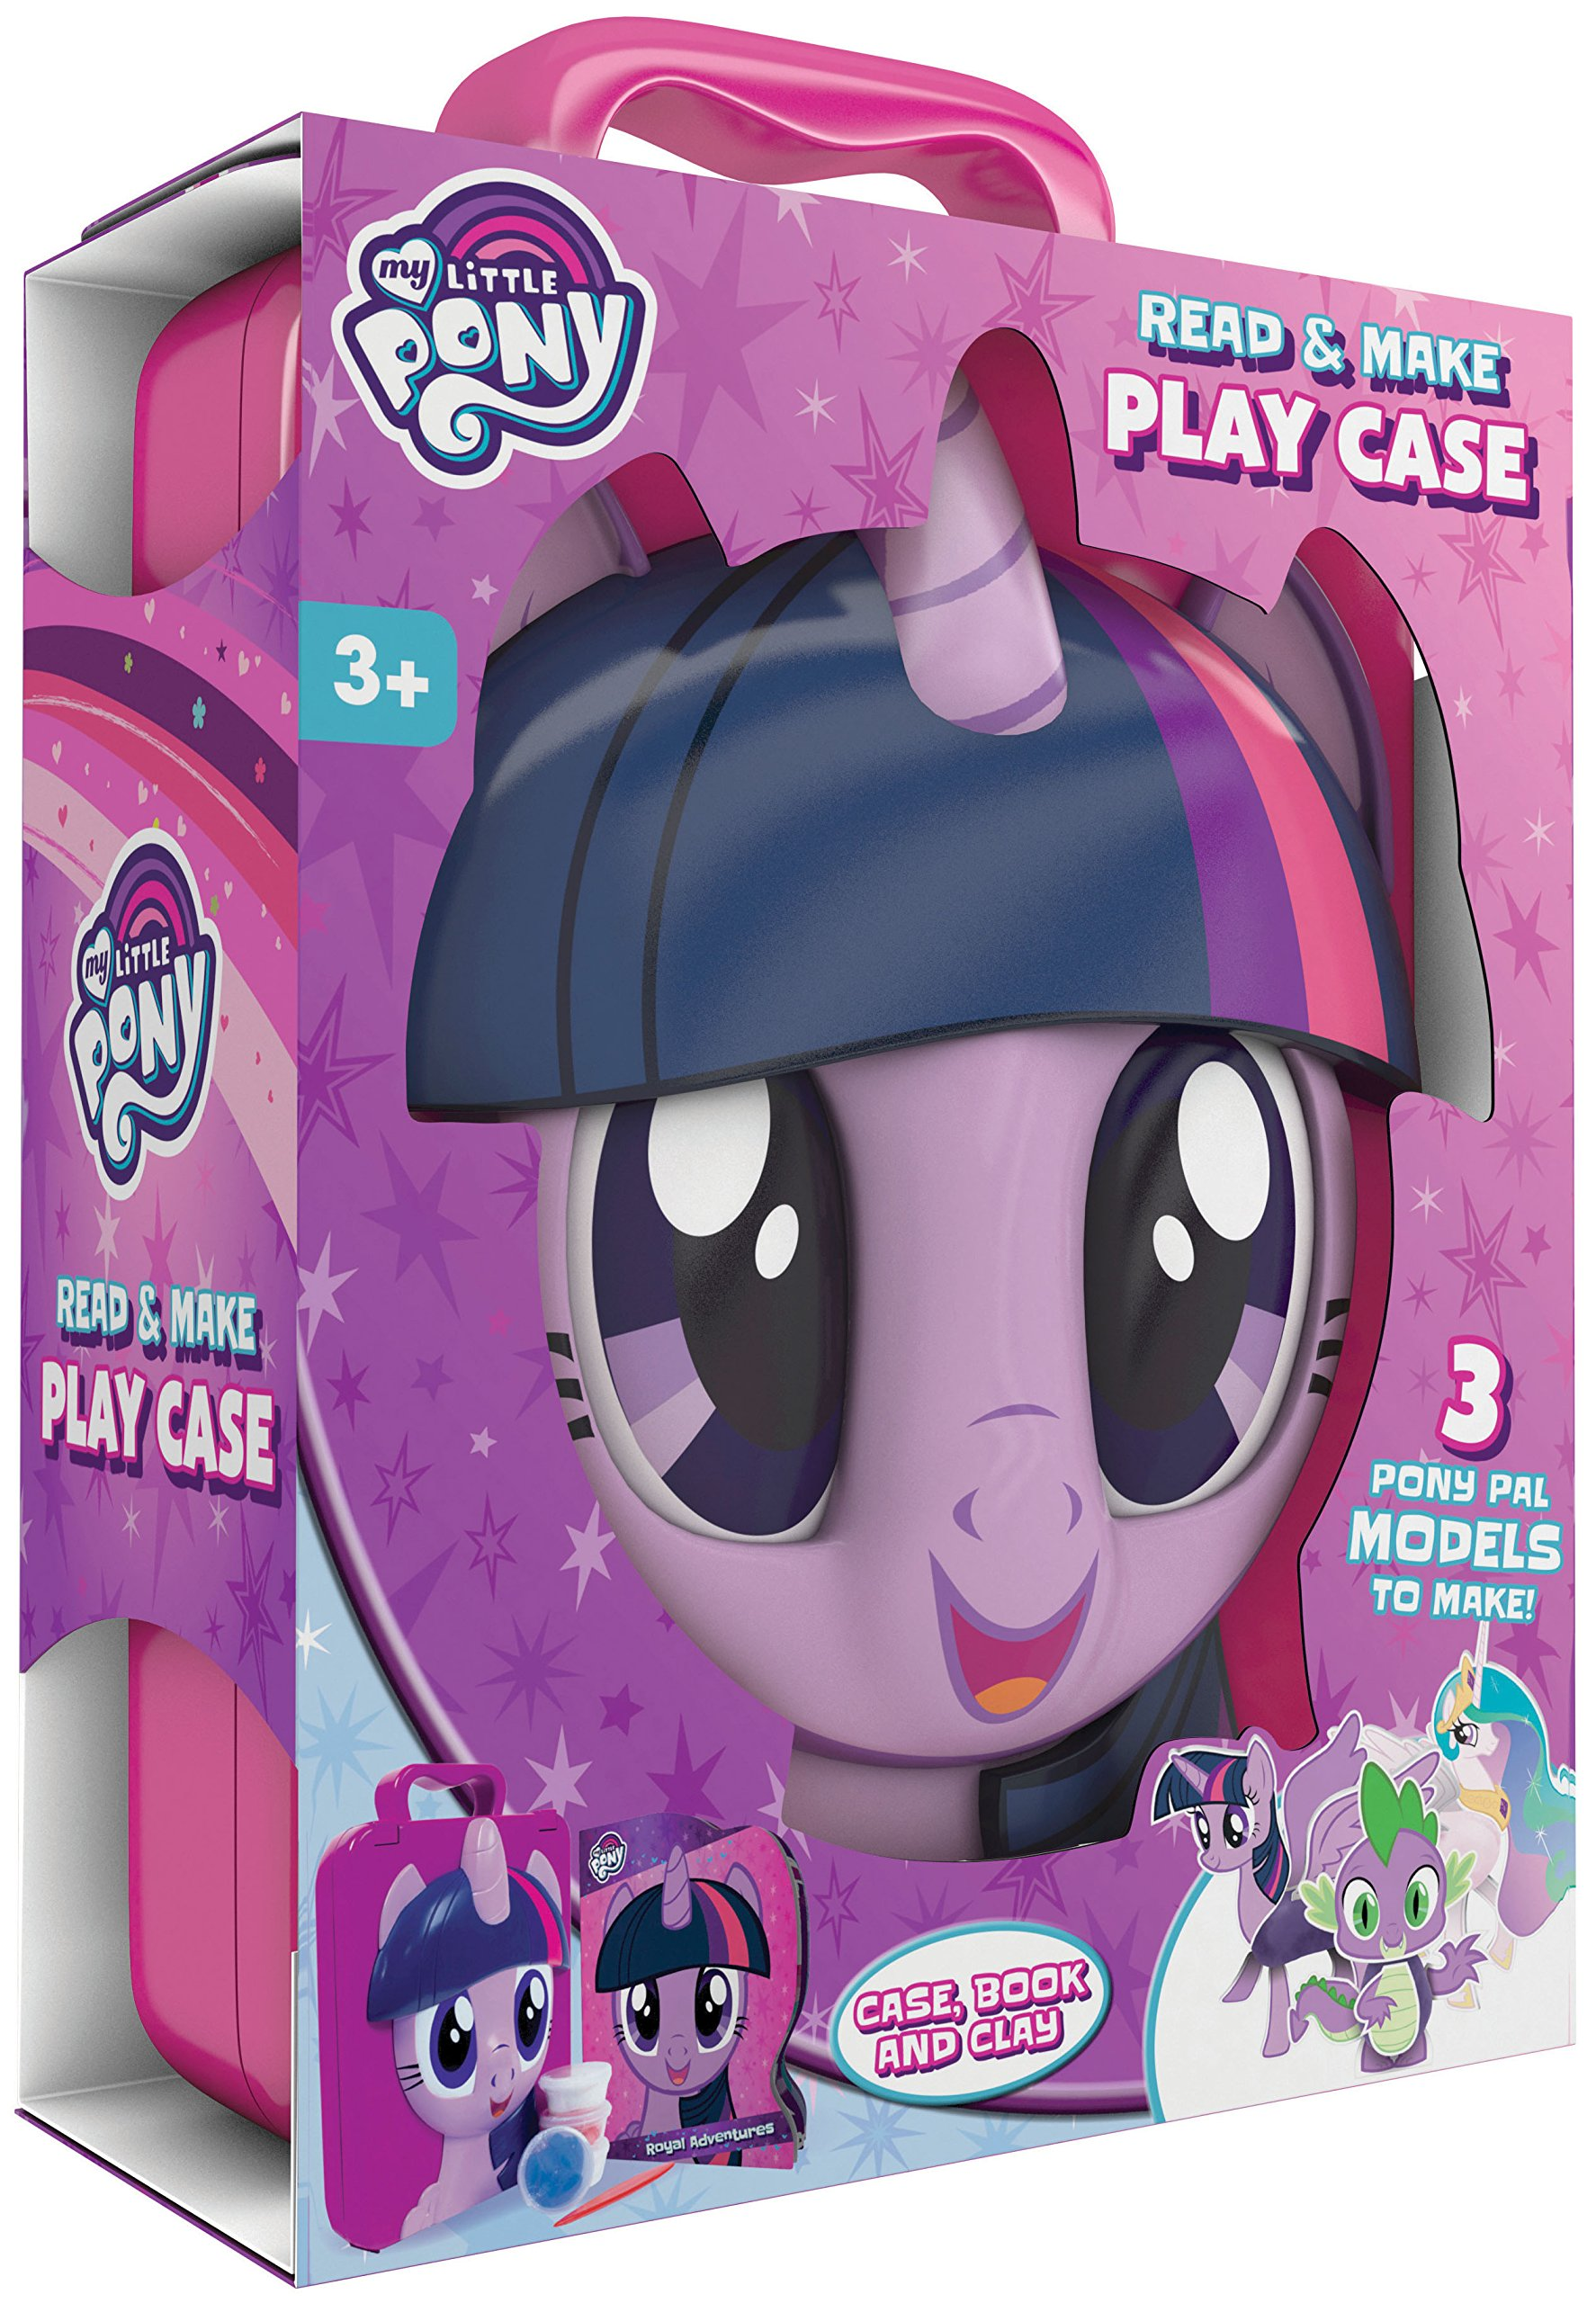 My Little Pony Read & Make Play Case